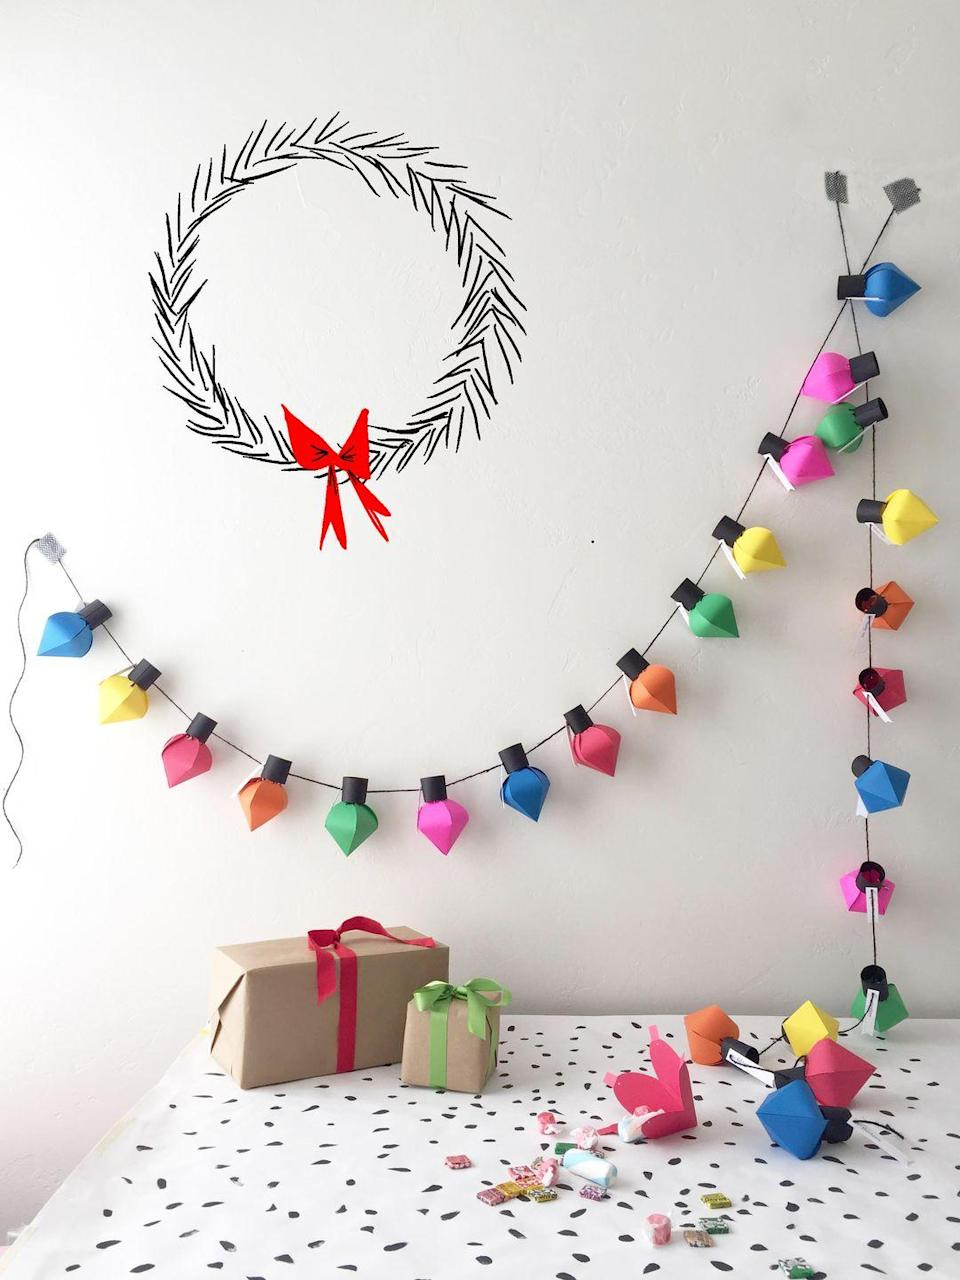 "<p>Not only is this super colorful strand of string lights gorgeous wall (or tree!) decor, but it's also an adorable advent calendar.</p><p>Get the tutorial at <a href=""http://thehousethatlarsbuilt.com/2015/11/diy-christmas-bulb-advent-calendar.html/"" rel=""nofollow noopener"" target=""_blank"" data-ylk=""slk:The House That Lars Built"" class=""link rapid-noclick-resp"">The House That Lars Built</a>.</p>"